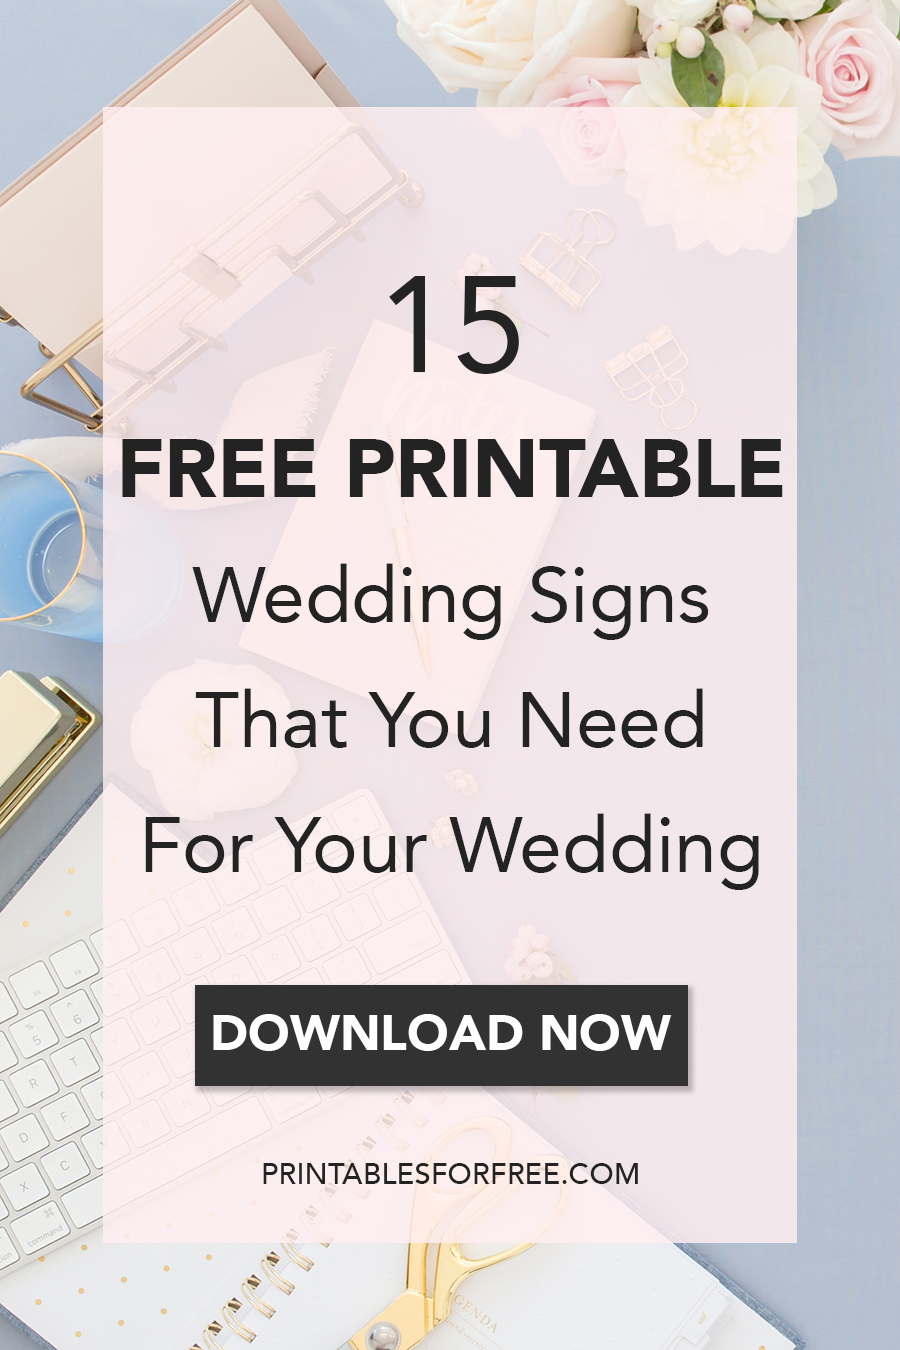 15 Free Printable Wedding Signs That You Need For Your Wedding - Free Printable Wedding Signs